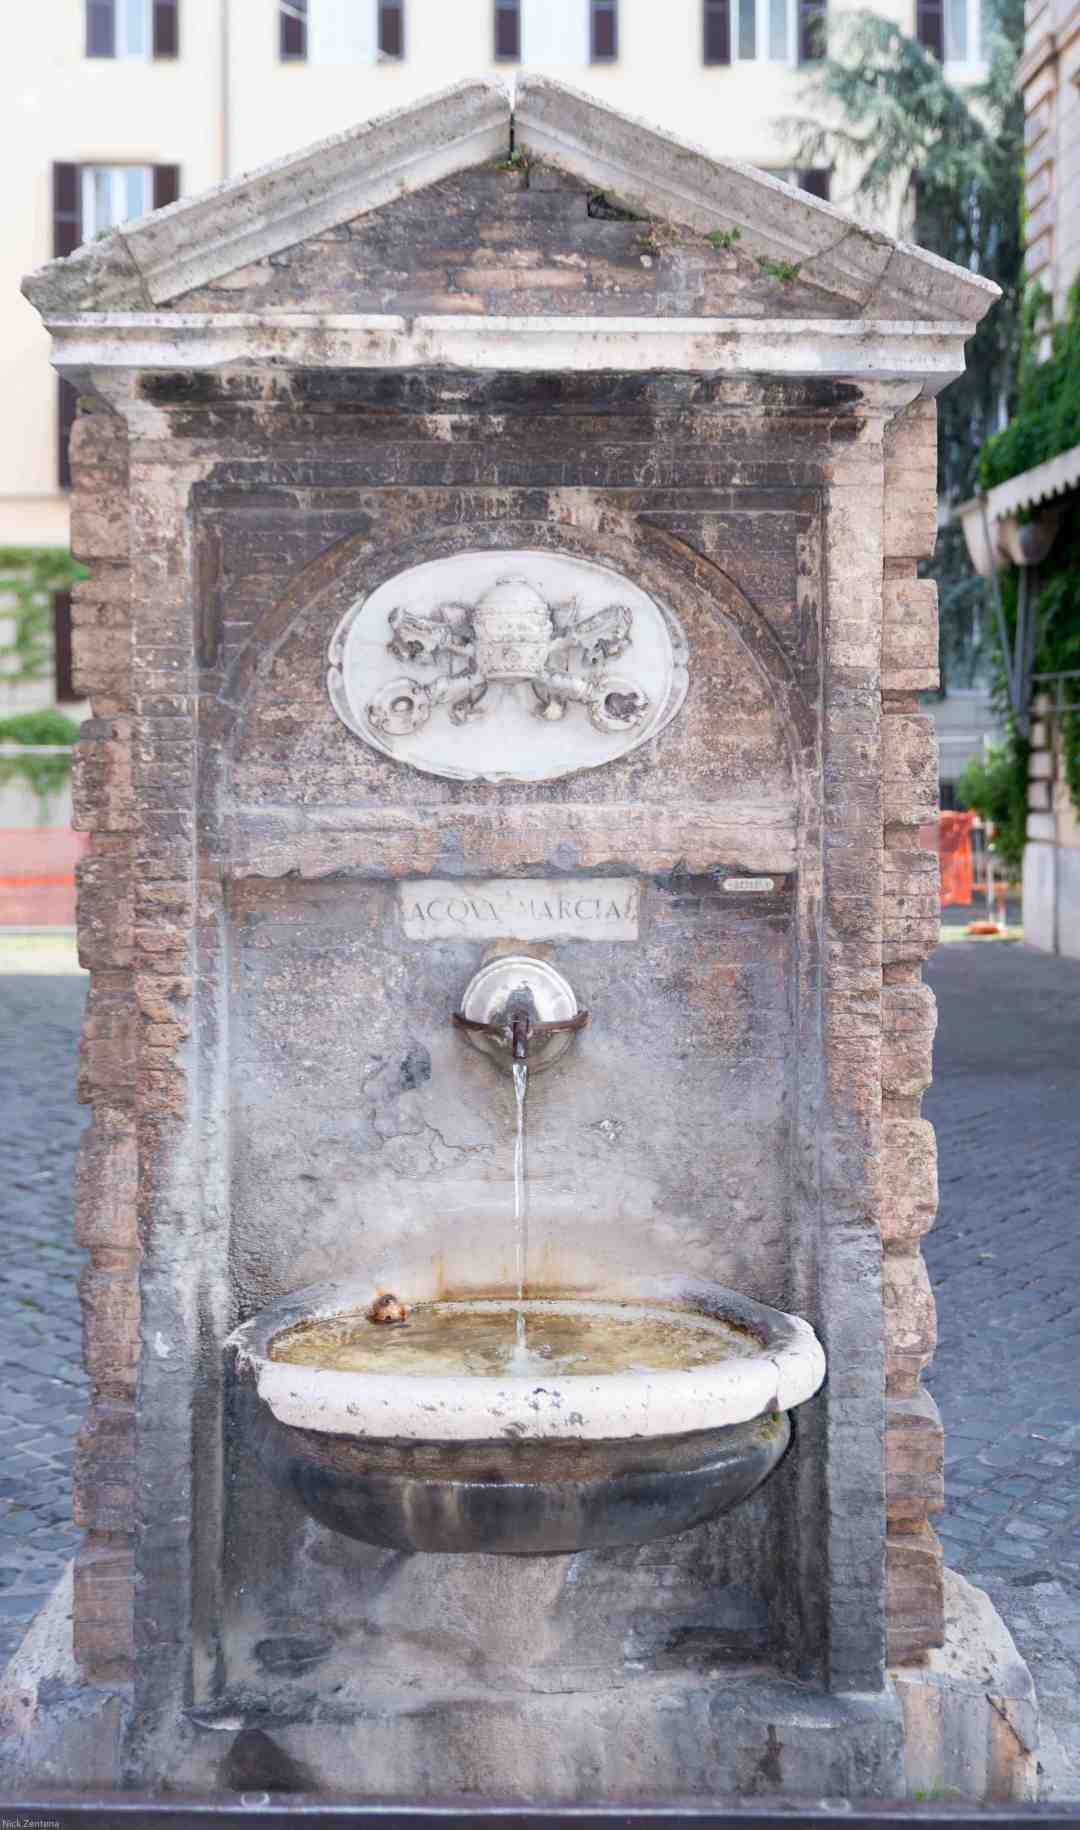 Vatican vintage drinking fountain